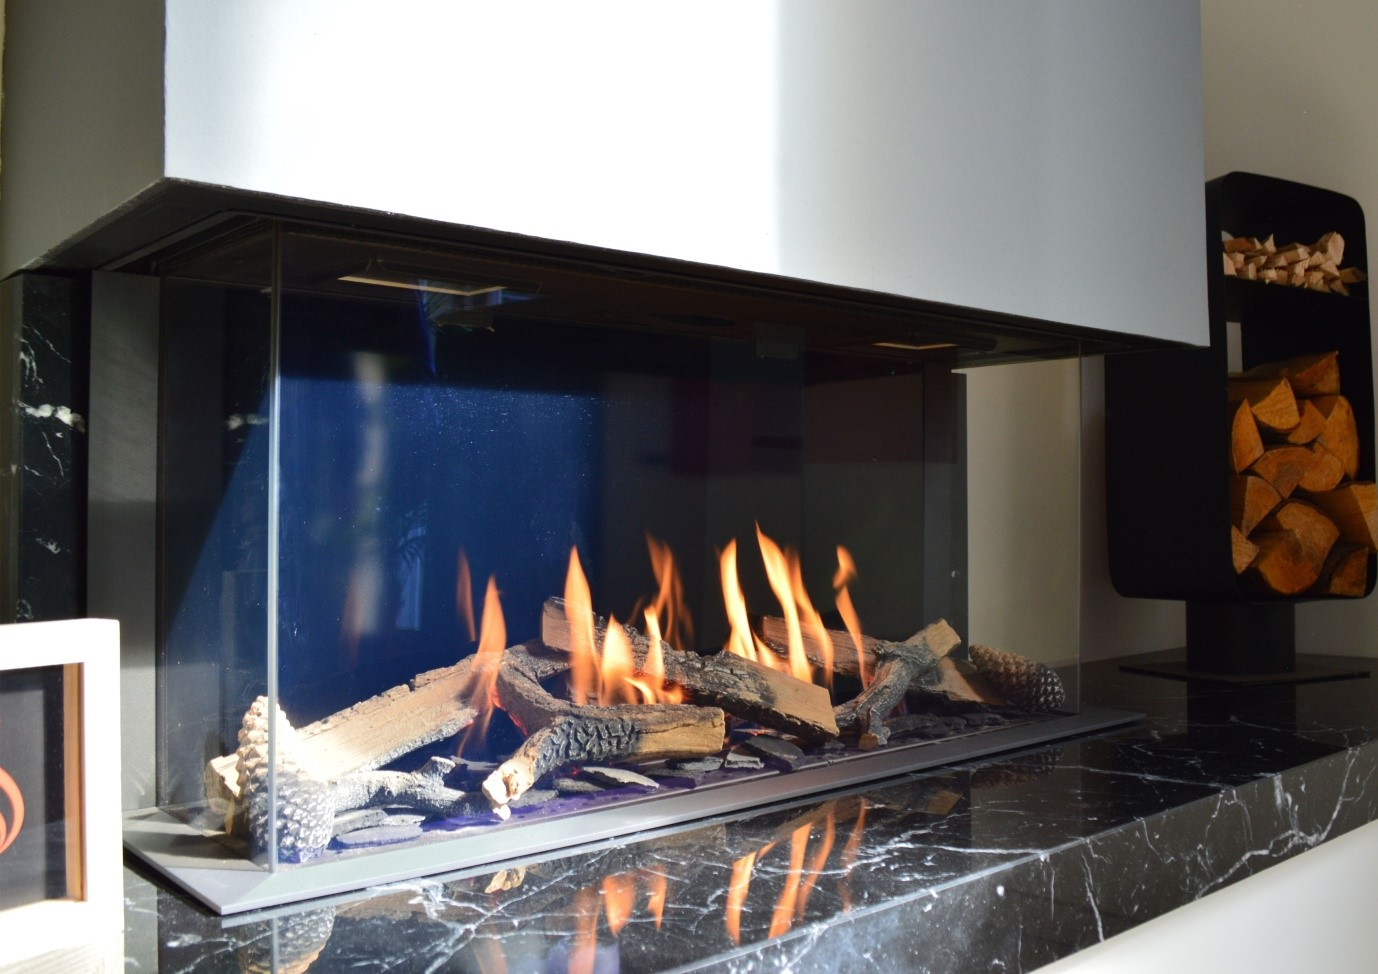 new fireplaces now being placed in the stonewoods showroom